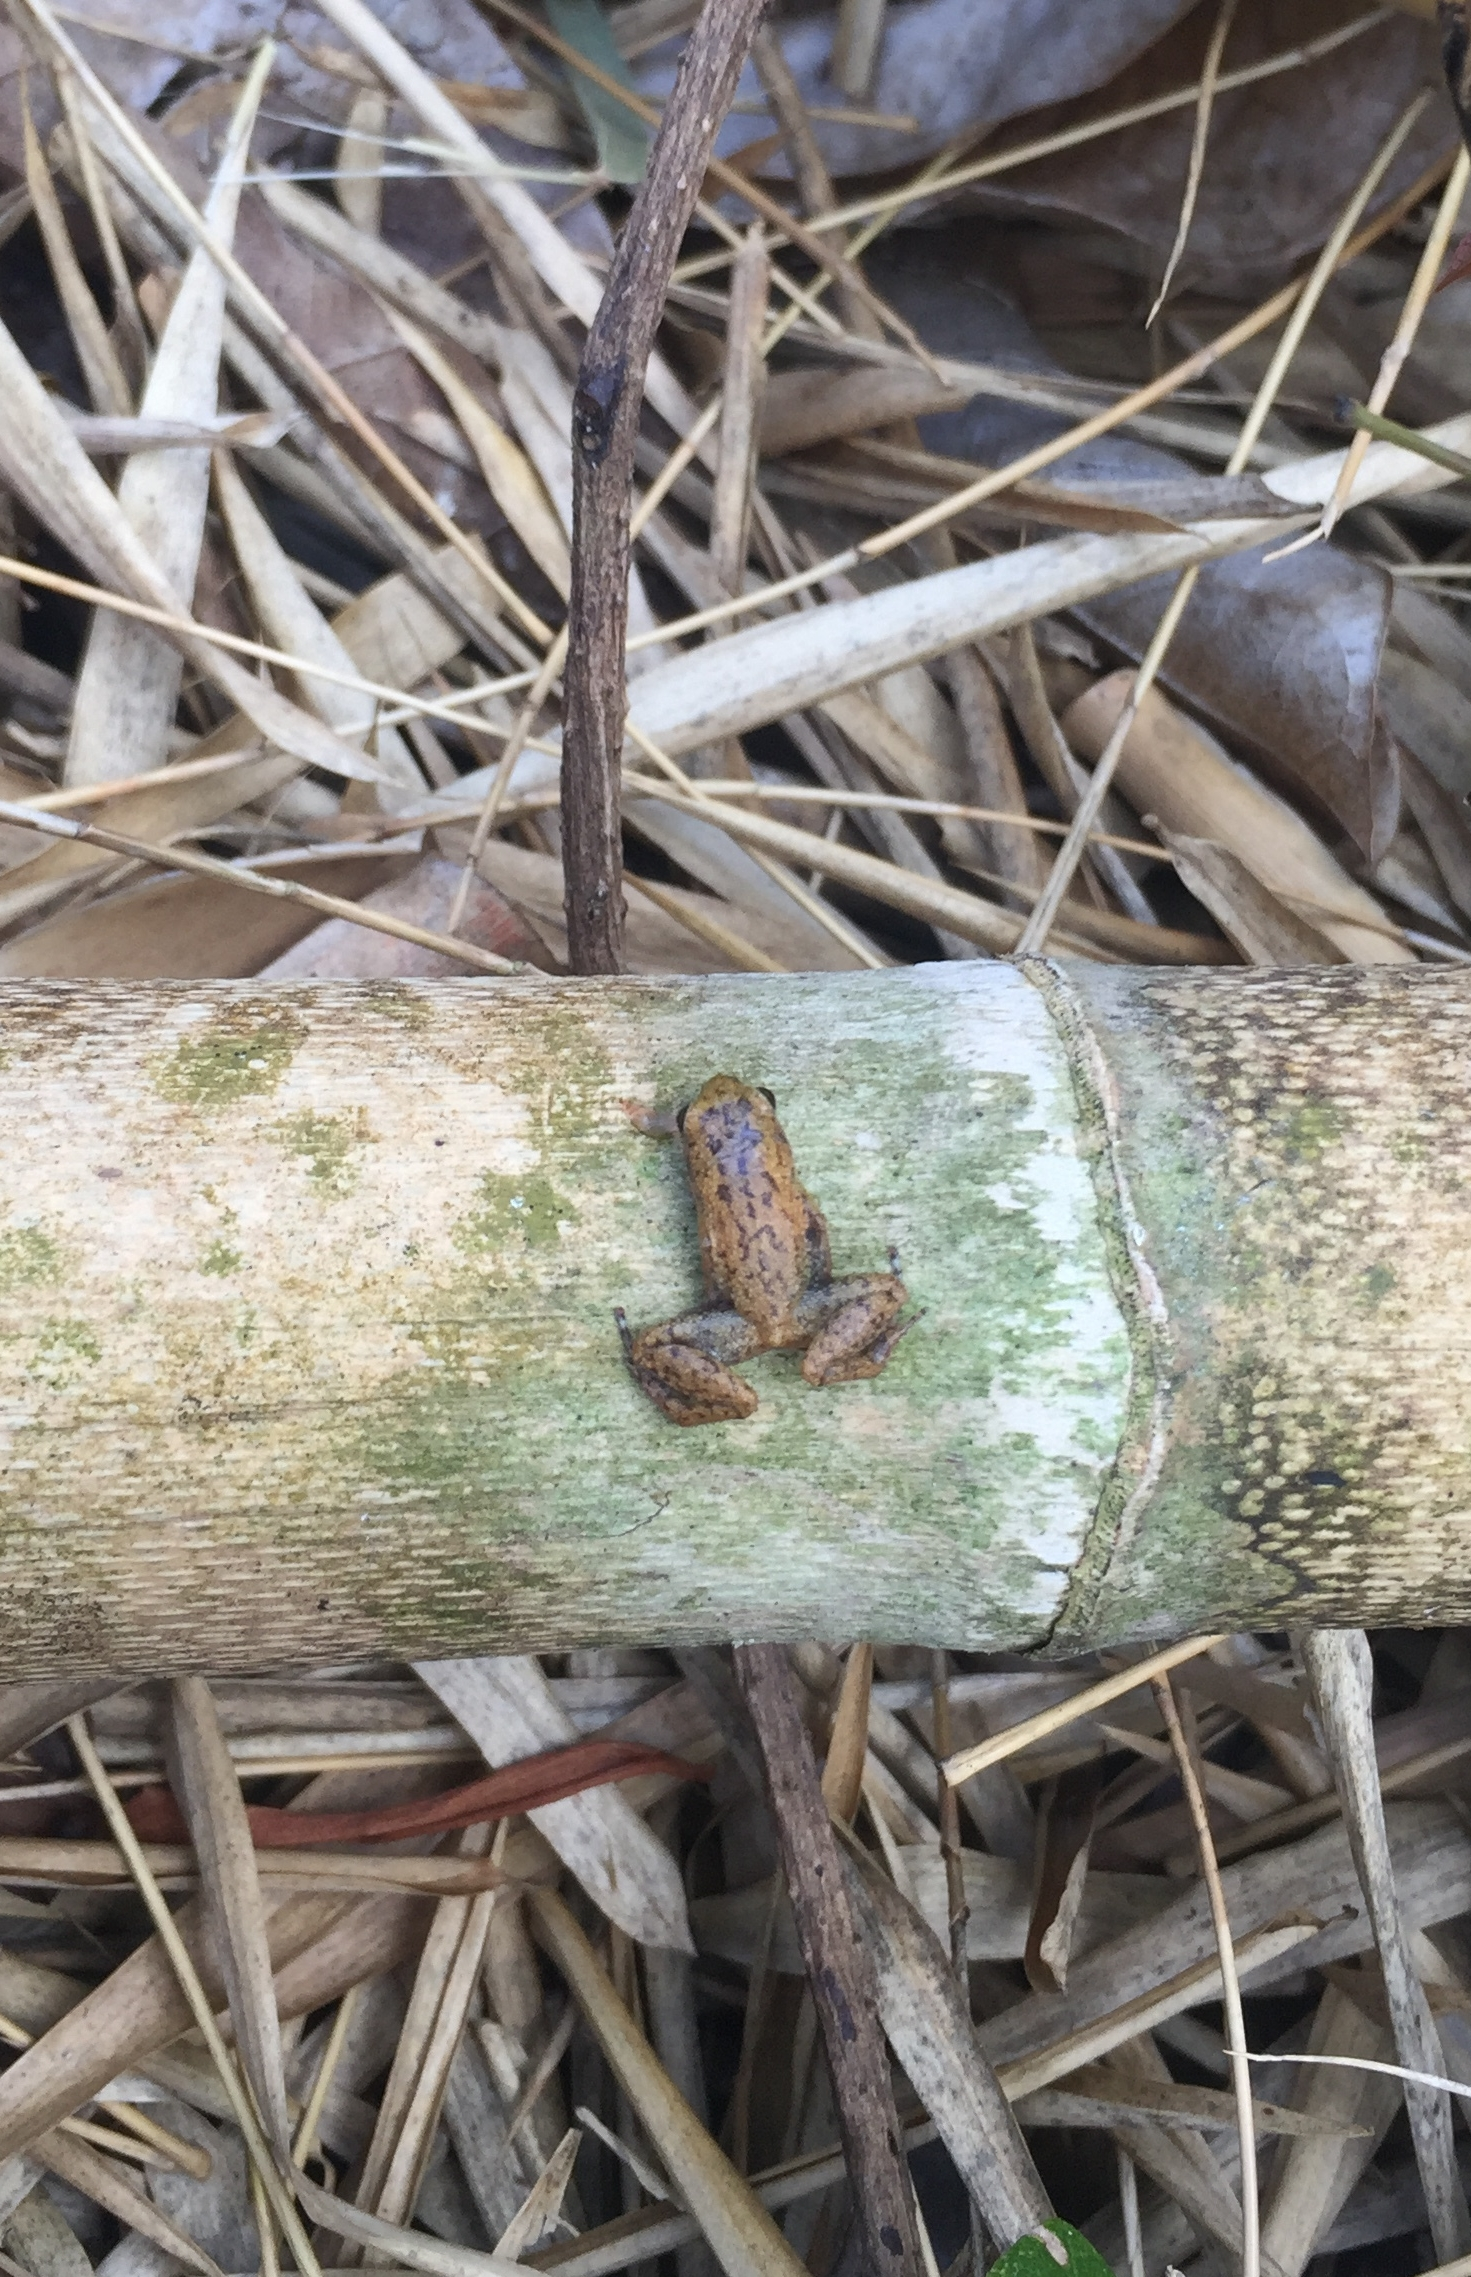 Madagascar stump-toed frog ( Stumpffia psologlossa ) playing dead on a piece of bamboo.